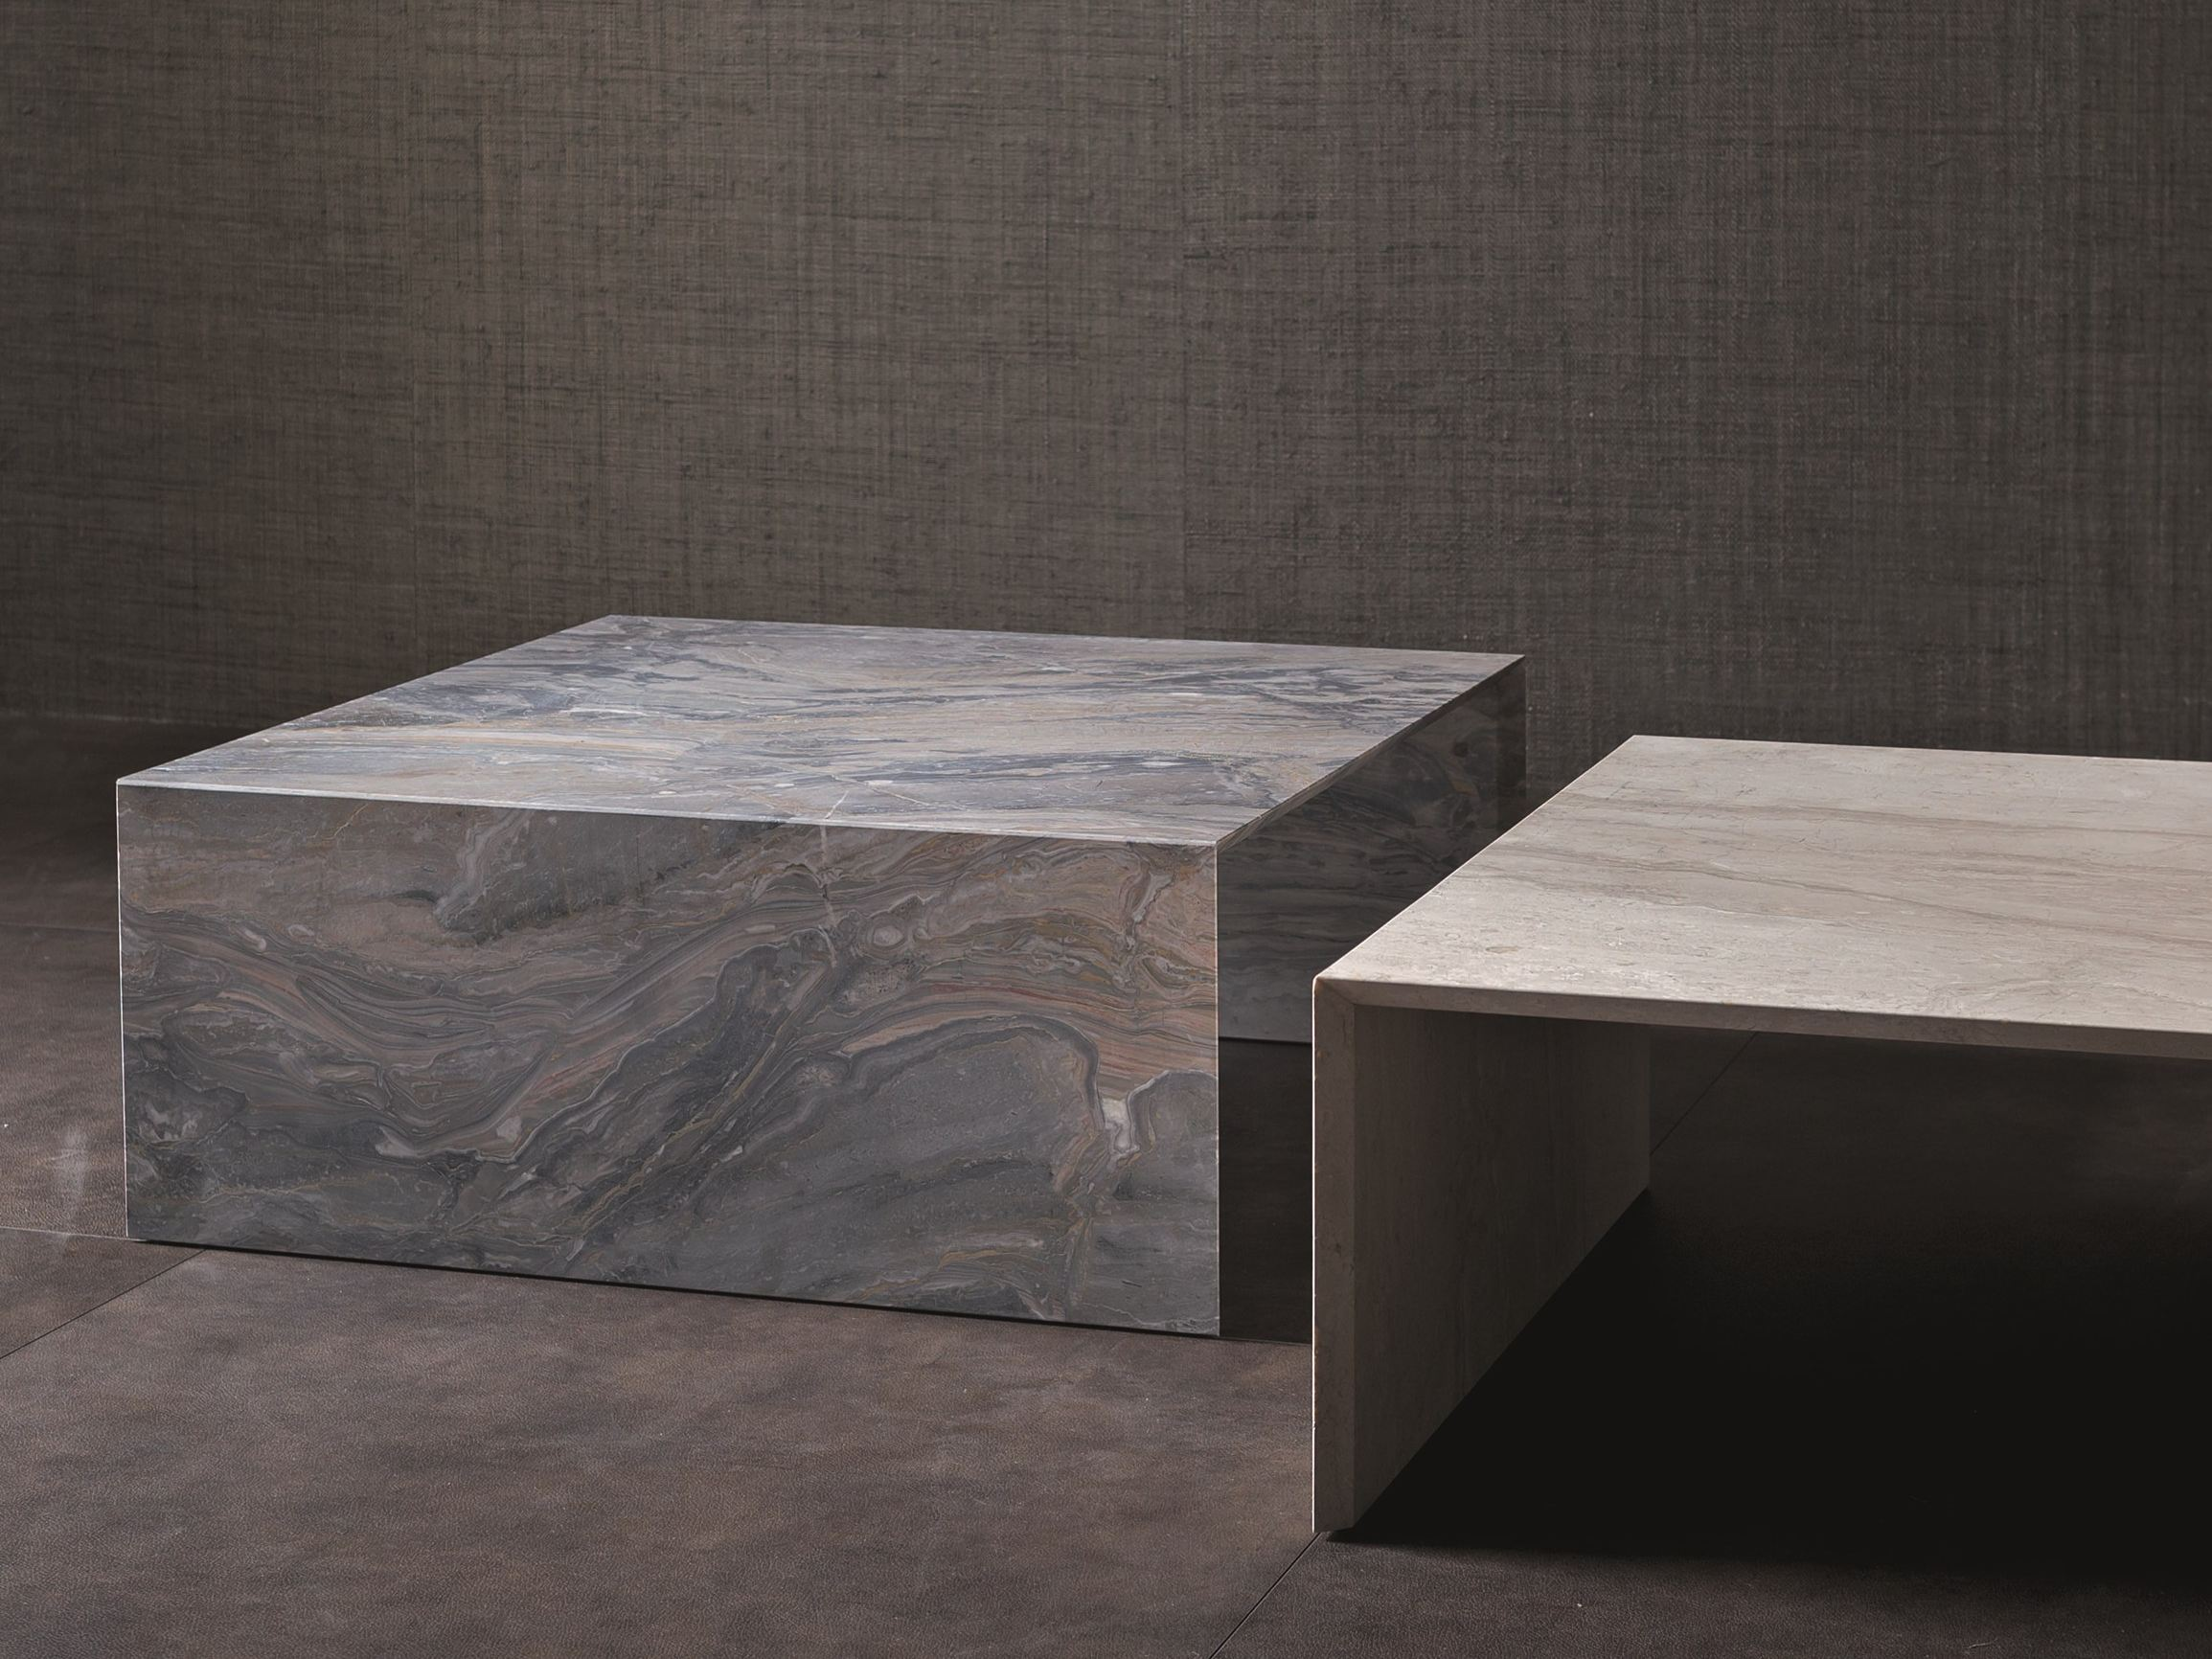 Table Basse Marbre Design Atwebsterfr Maison Et Mobilier